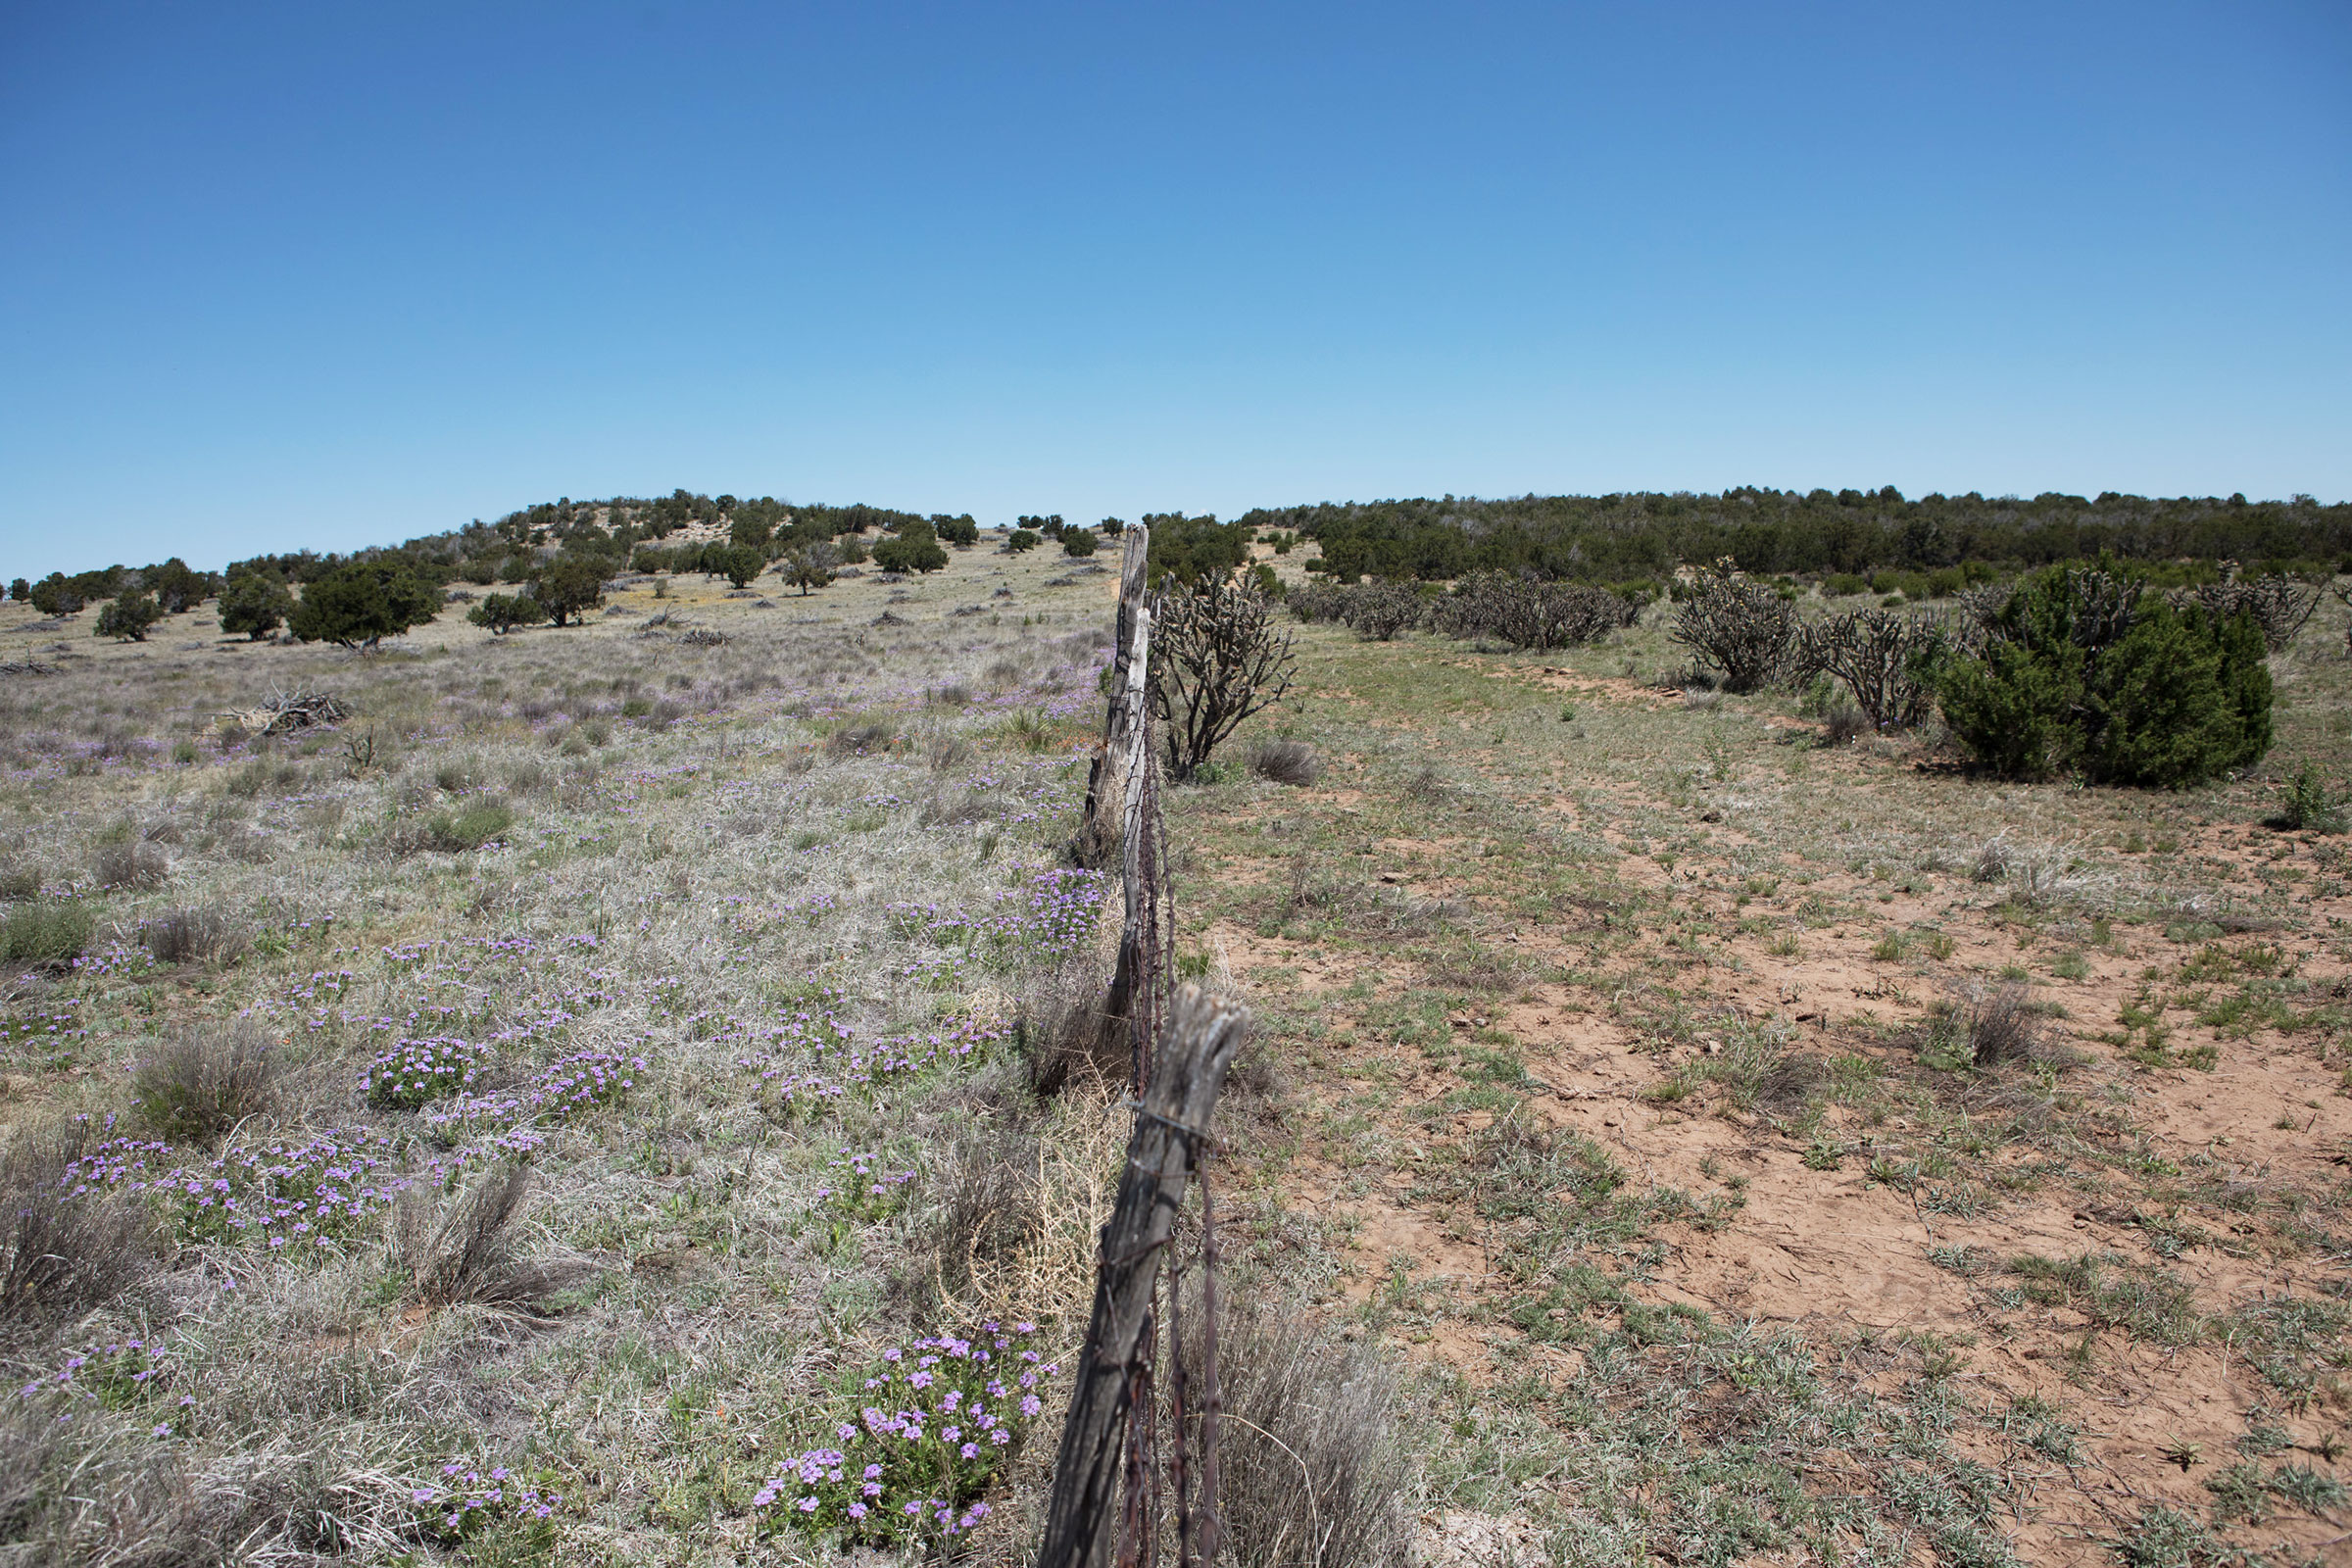 A fence line bordering the property of rancher Nancy Ranney (left) shows how rotational grazing spurs native grasses and wildflowers, while ungrazed land boasts far less diversity. Minesh Bacrania